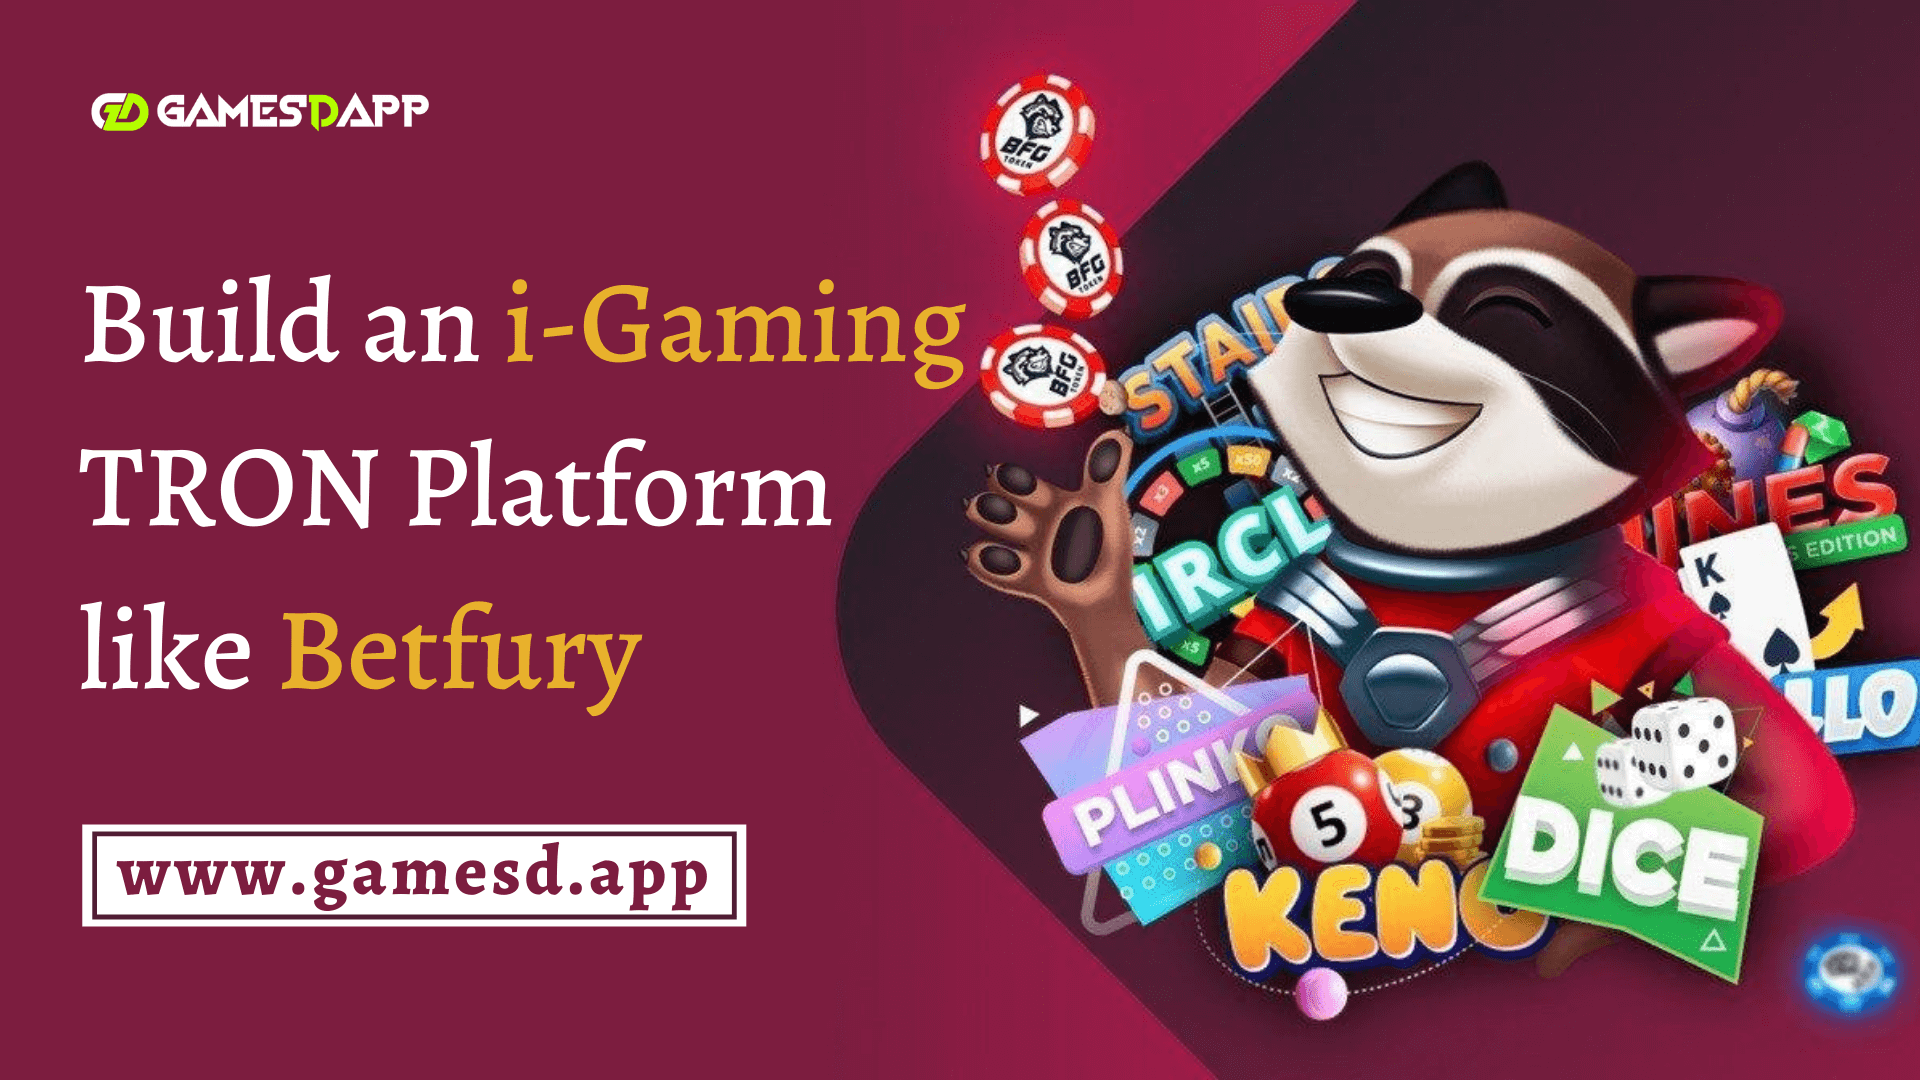 How to Build an i-Gaming Crypto Game Platform like Betfury on TRON Blockchain Network?